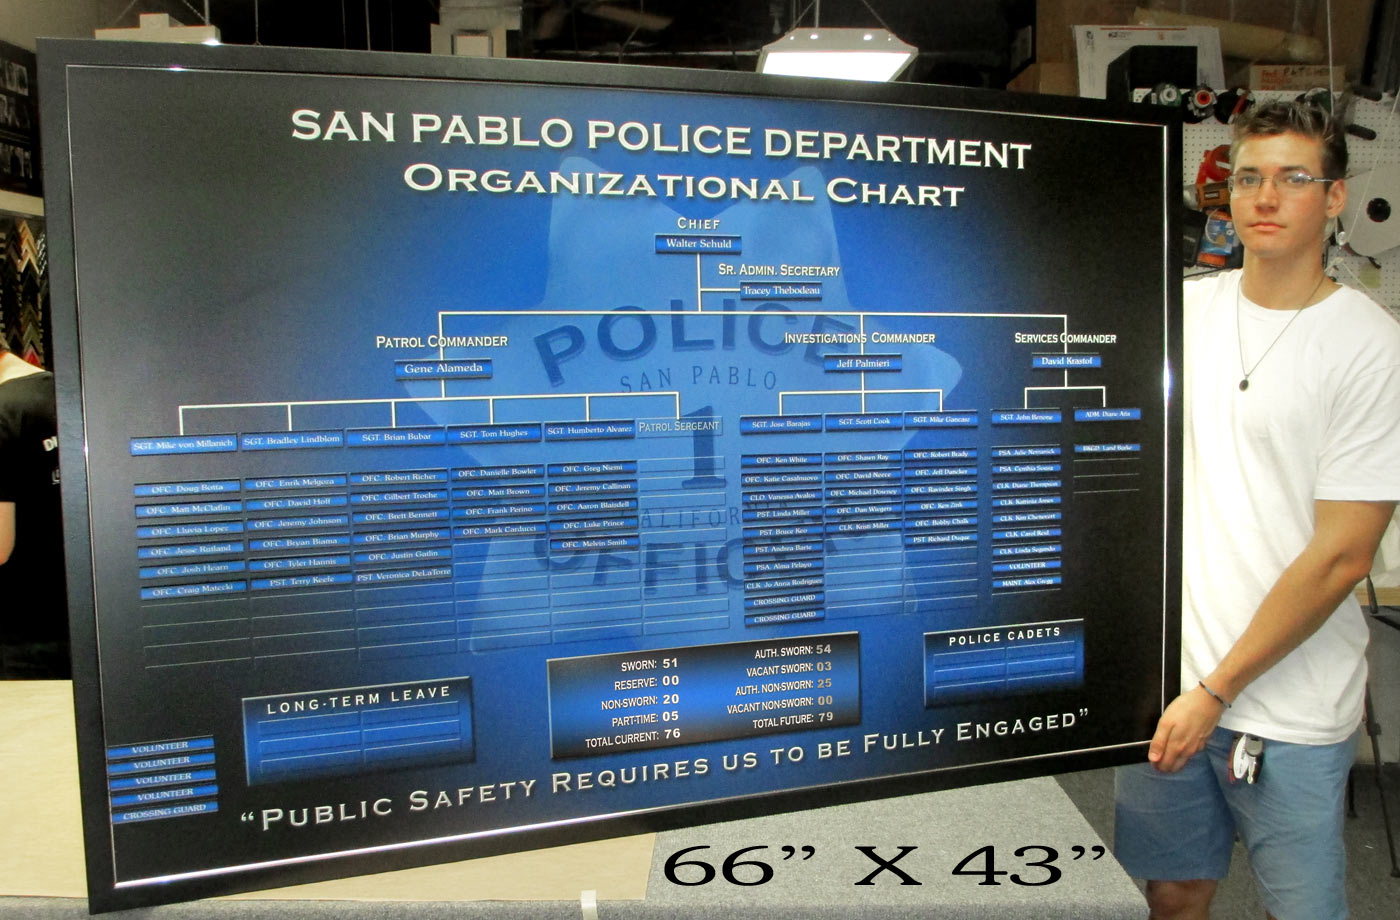 Magnetic Organizational Chart for San Pablo PD